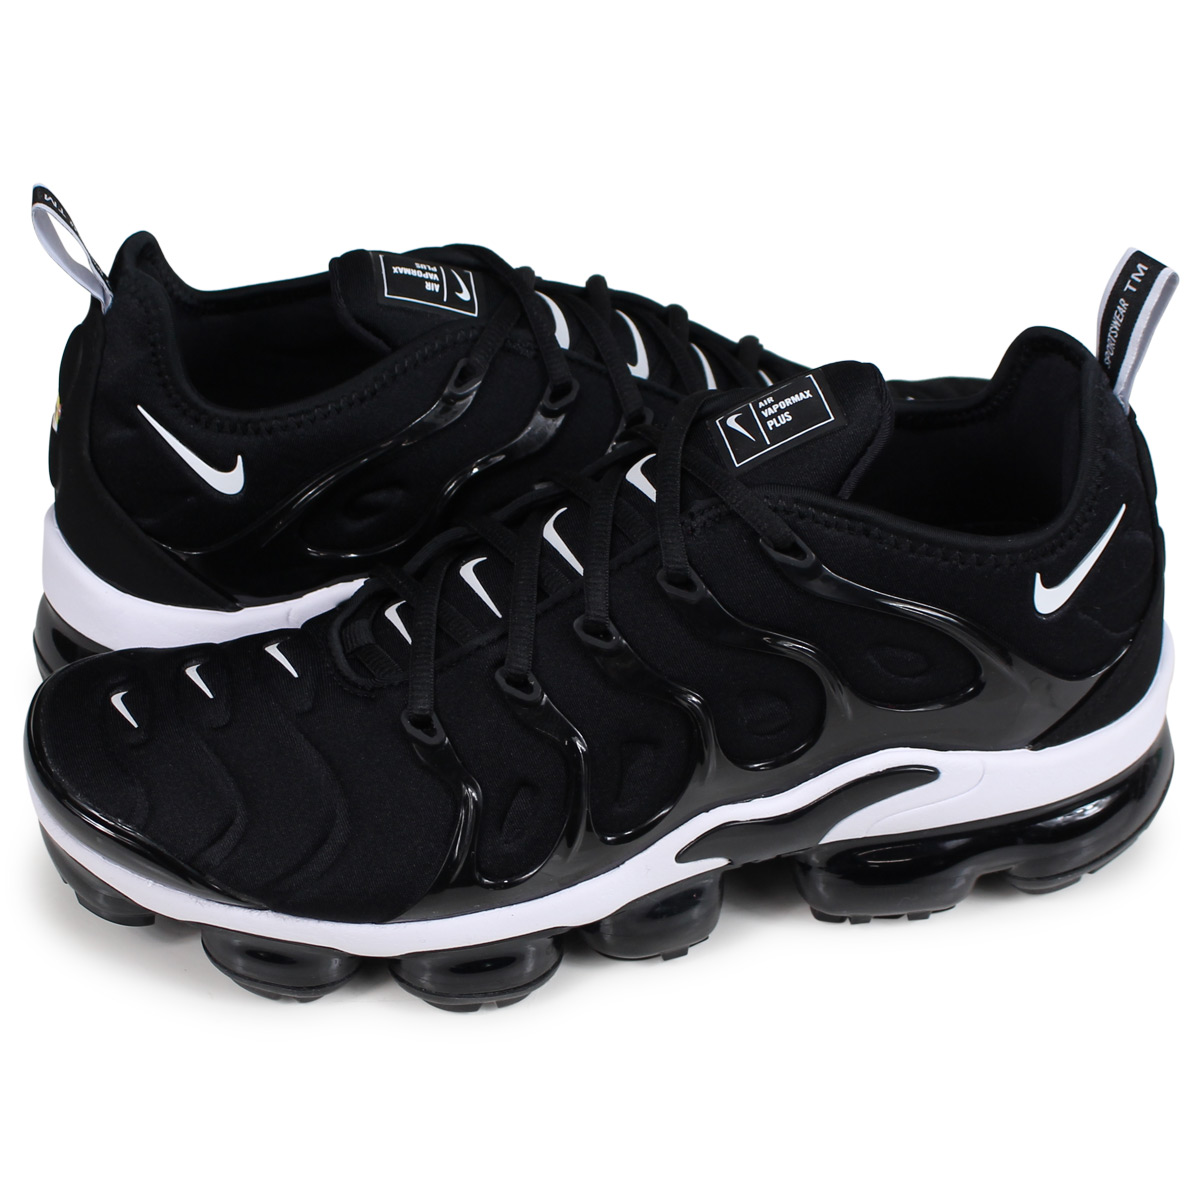 timeless design b2278 0de01 Nike NIKE air vapor max plus sneakers men AIR VAPORMAX PLUS black  924,453-011 [11/22 Shinnyu load] [1811]